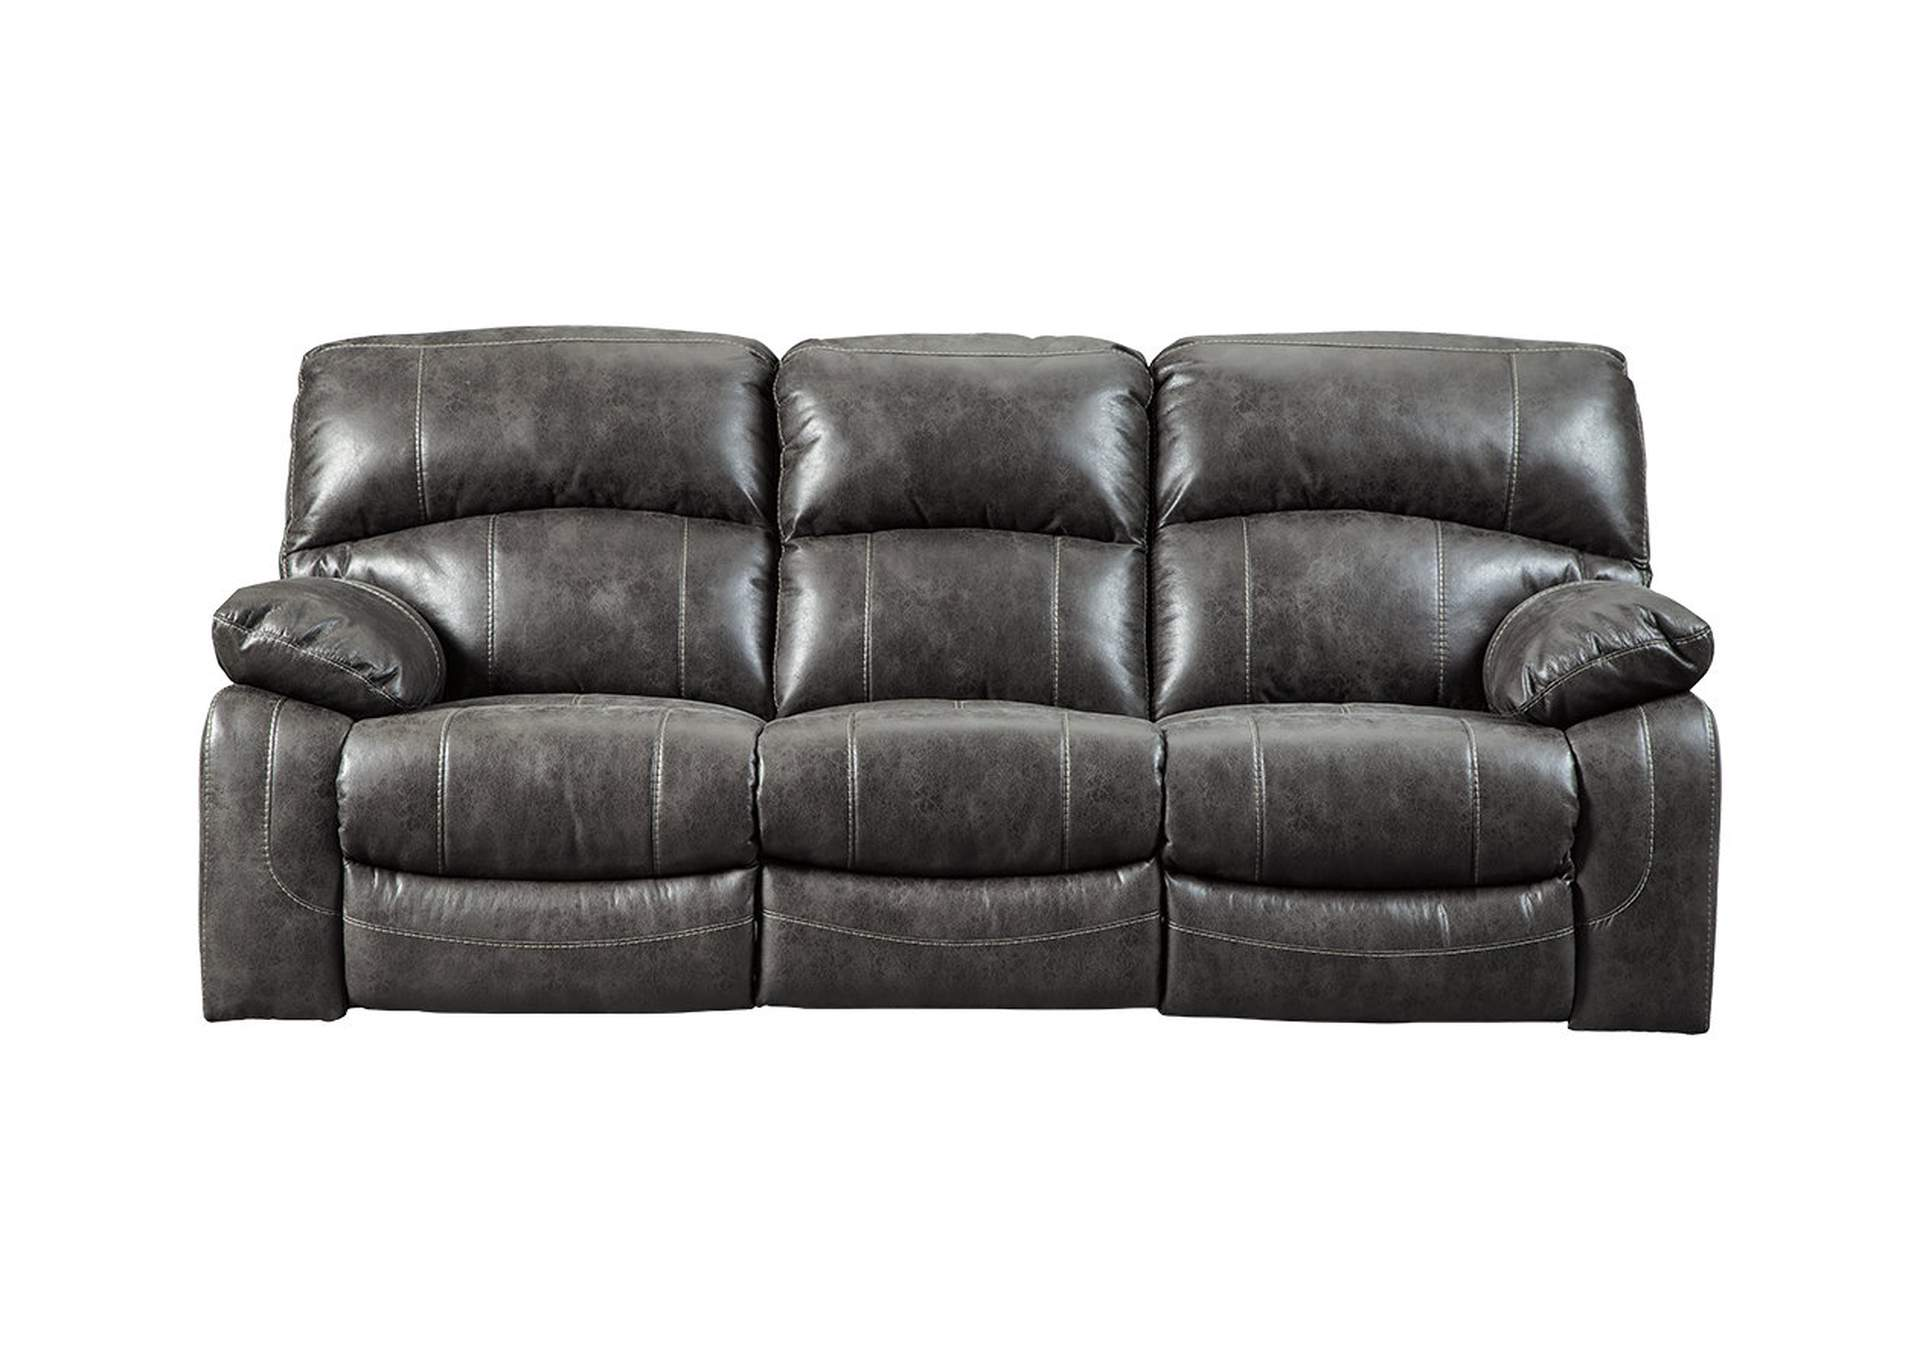 Dunwell Steel Power Reclining Sofa w/Adjustable Headrest,Signature Design By Ashley